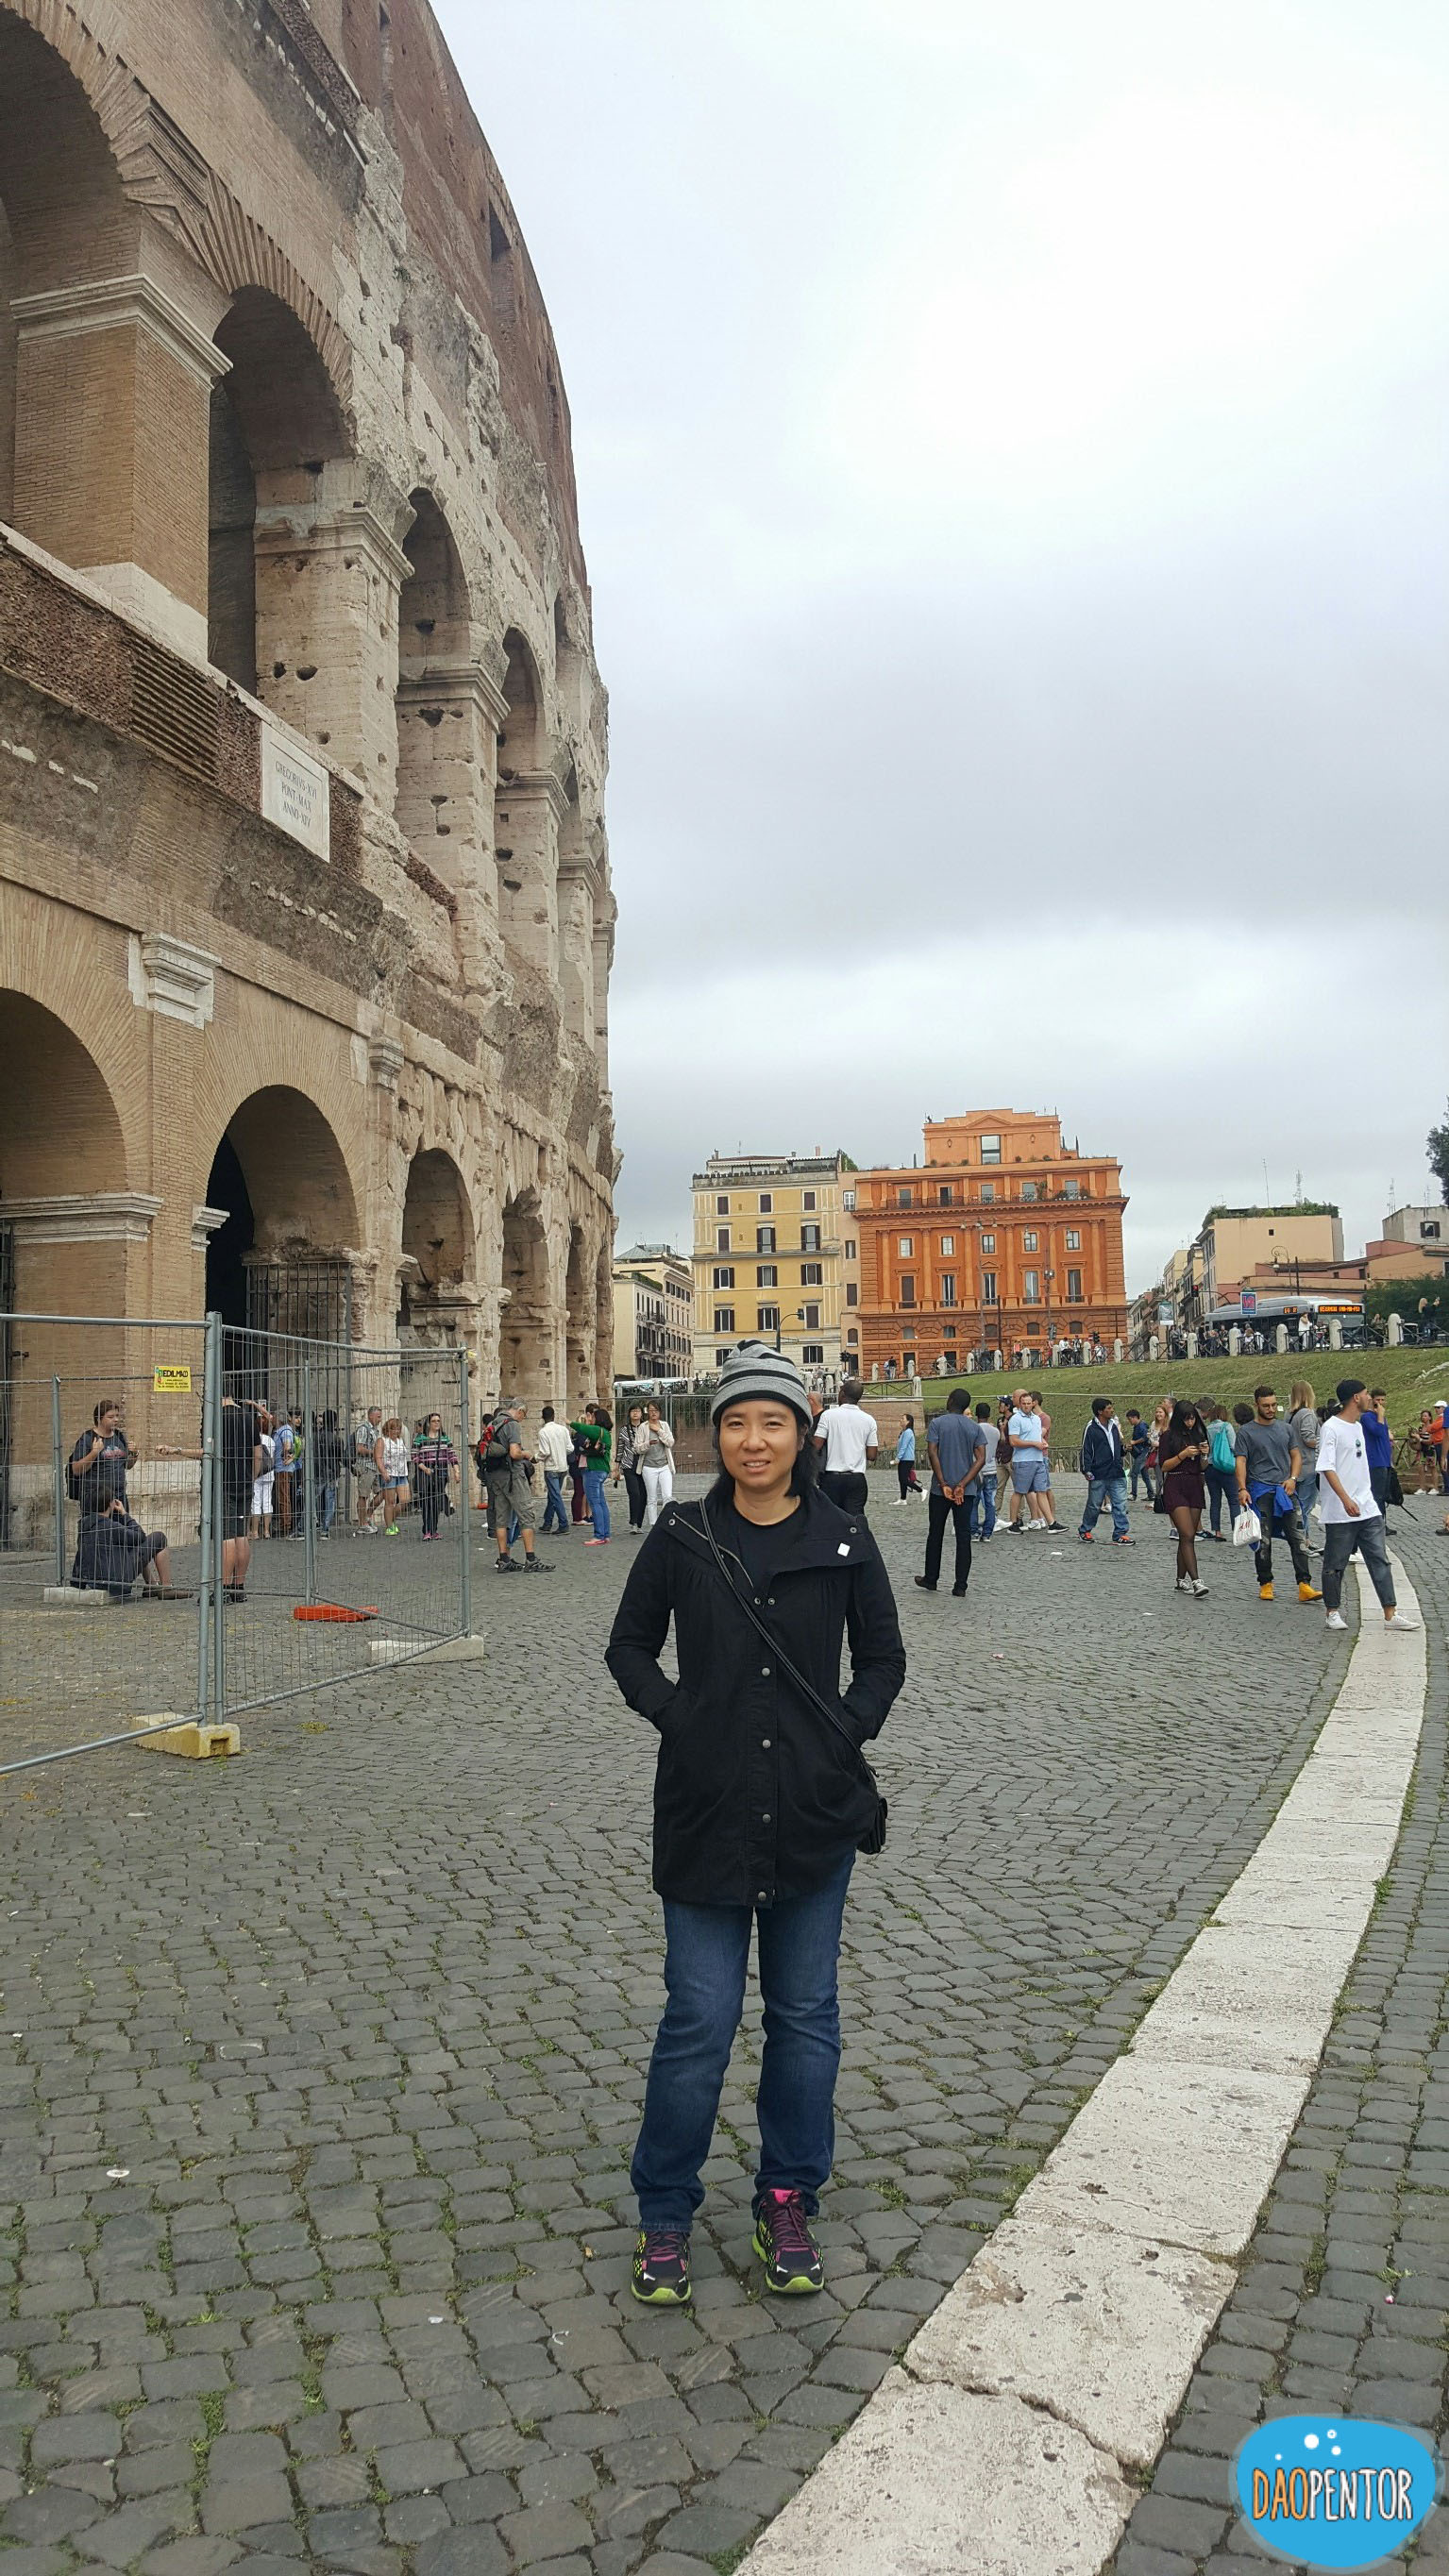 Daopentor at Roma